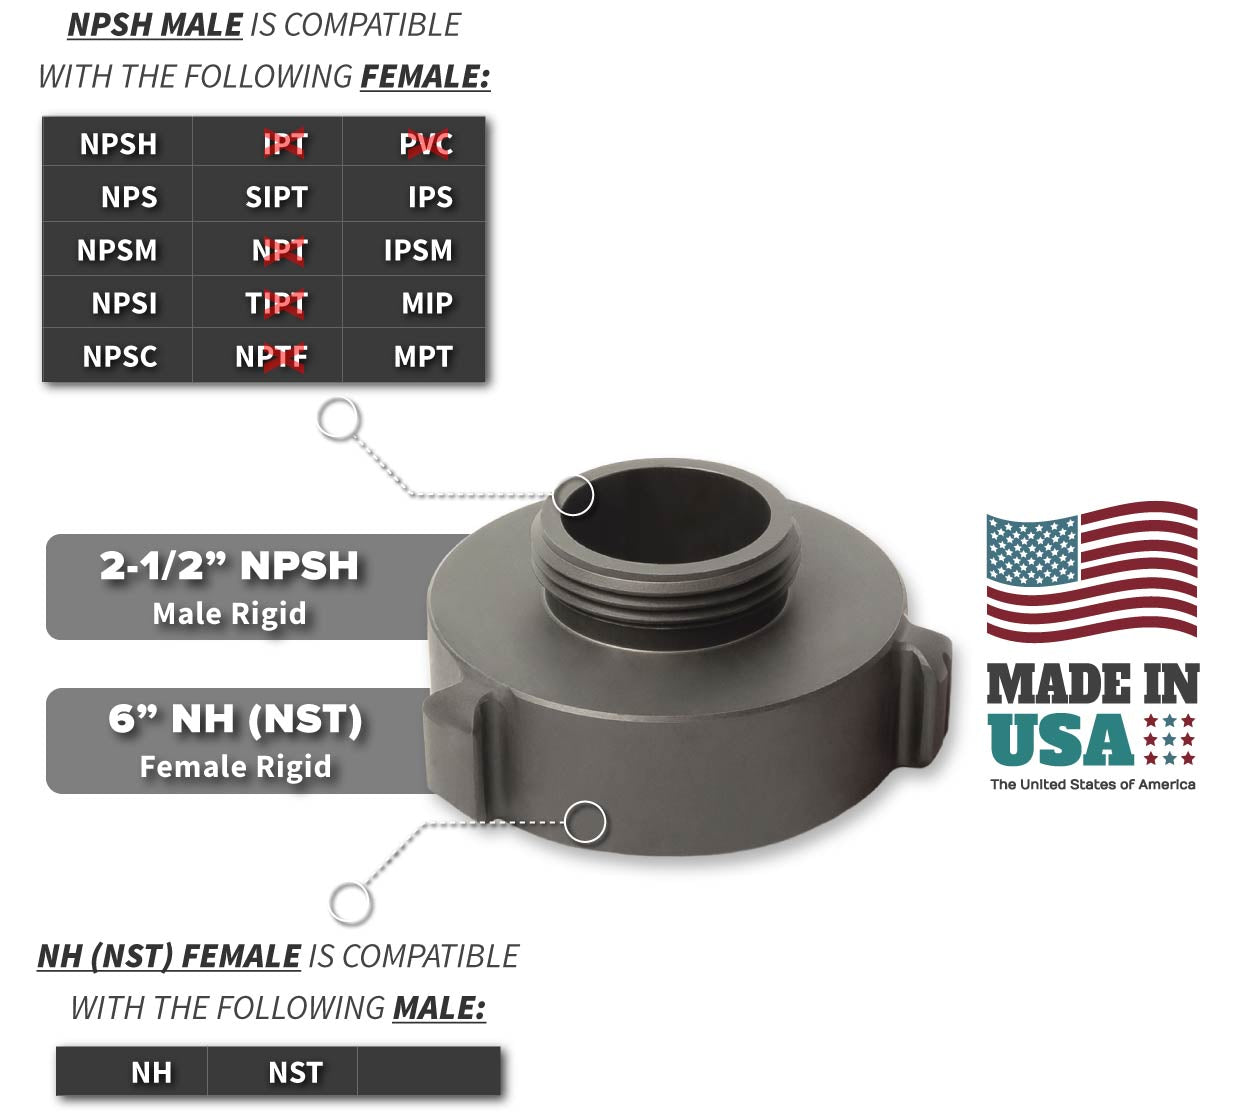 6 Inch NH-NST Female x 2.5 Inch NPSH Male Compatibility Thread Chart